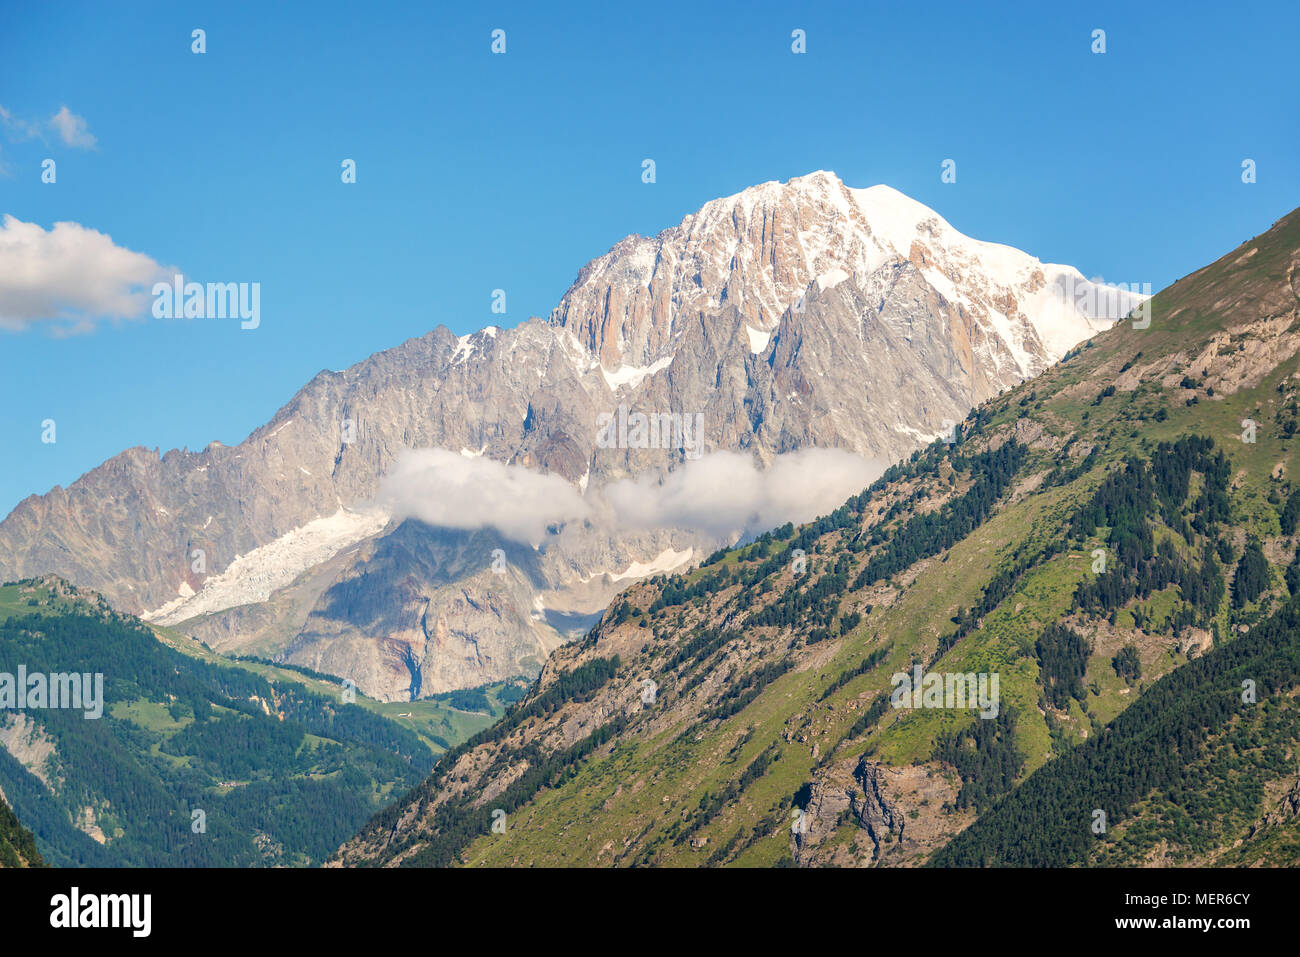 Monte Bianco (Mont Blanc) in the background view from Aosta Valley, Italy - Stock Image